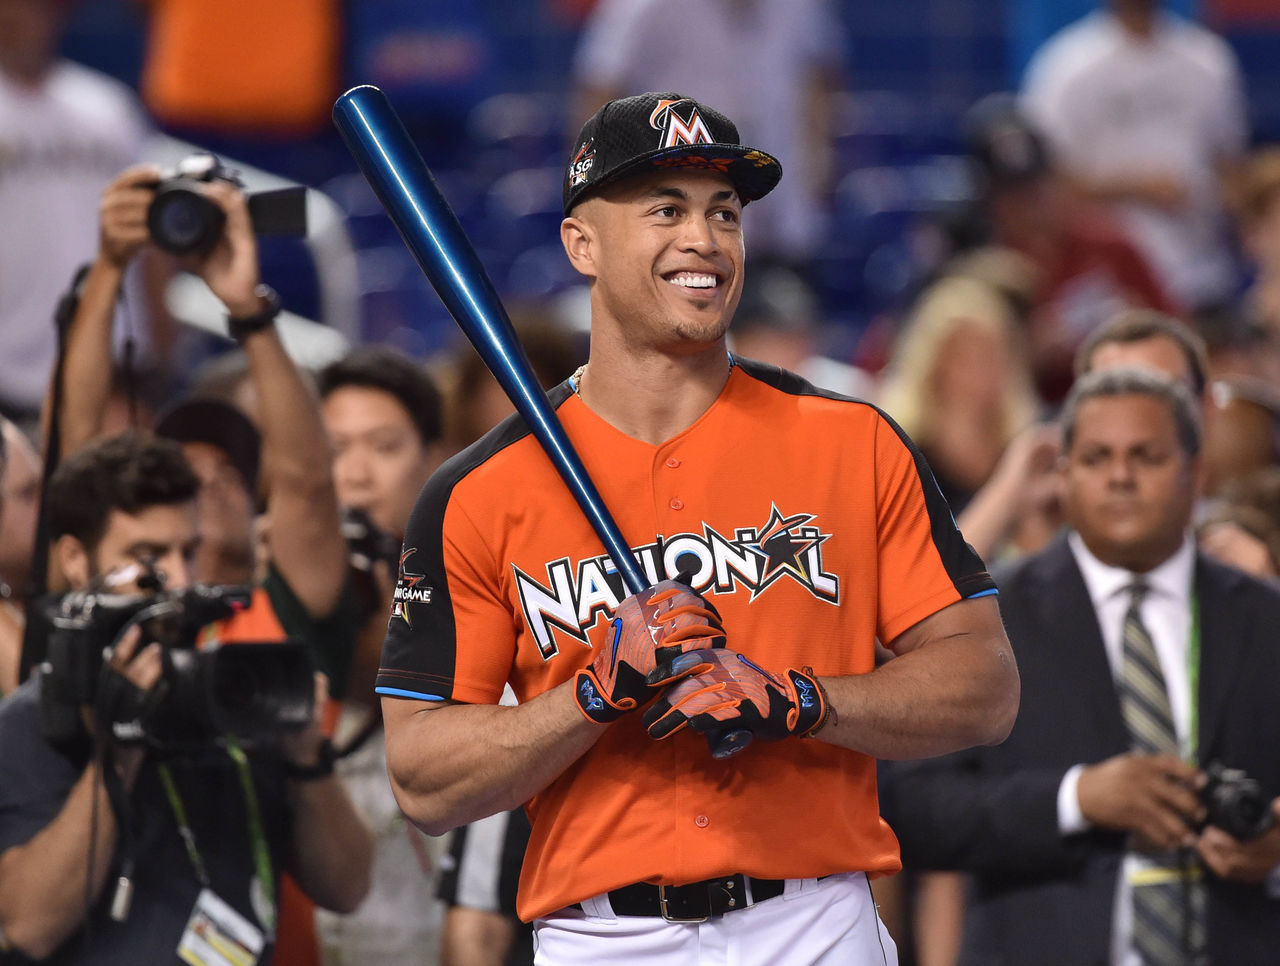 Cropped_2017-07-10t223842z_259715068_nocid_rtrmadp_3_mlb-all-star-game-batting-practice